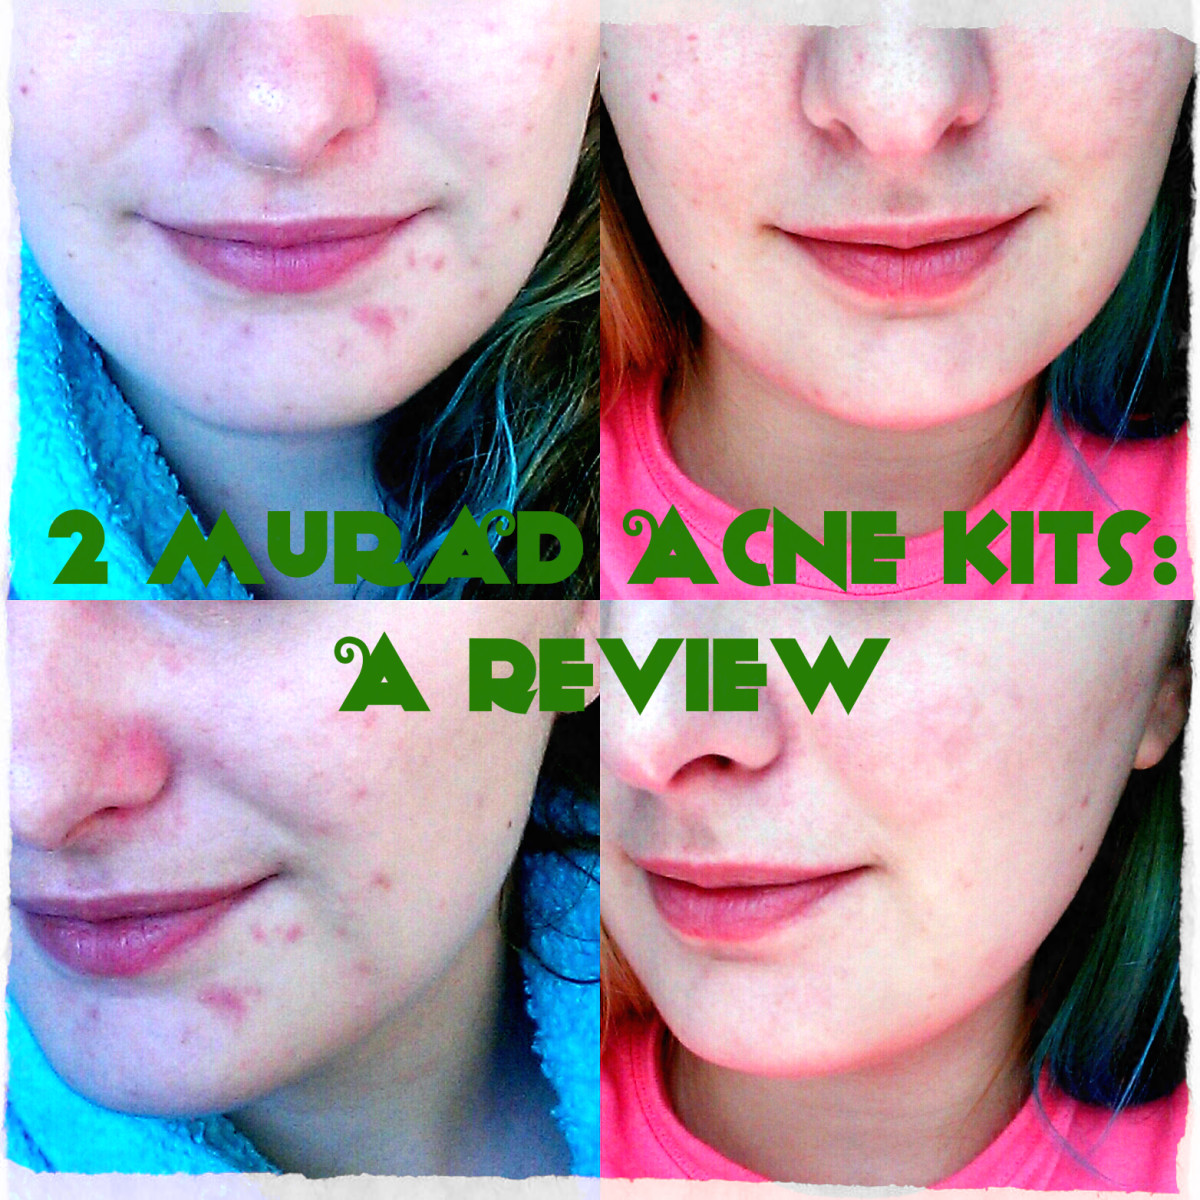 Before and after Murad acne kits.